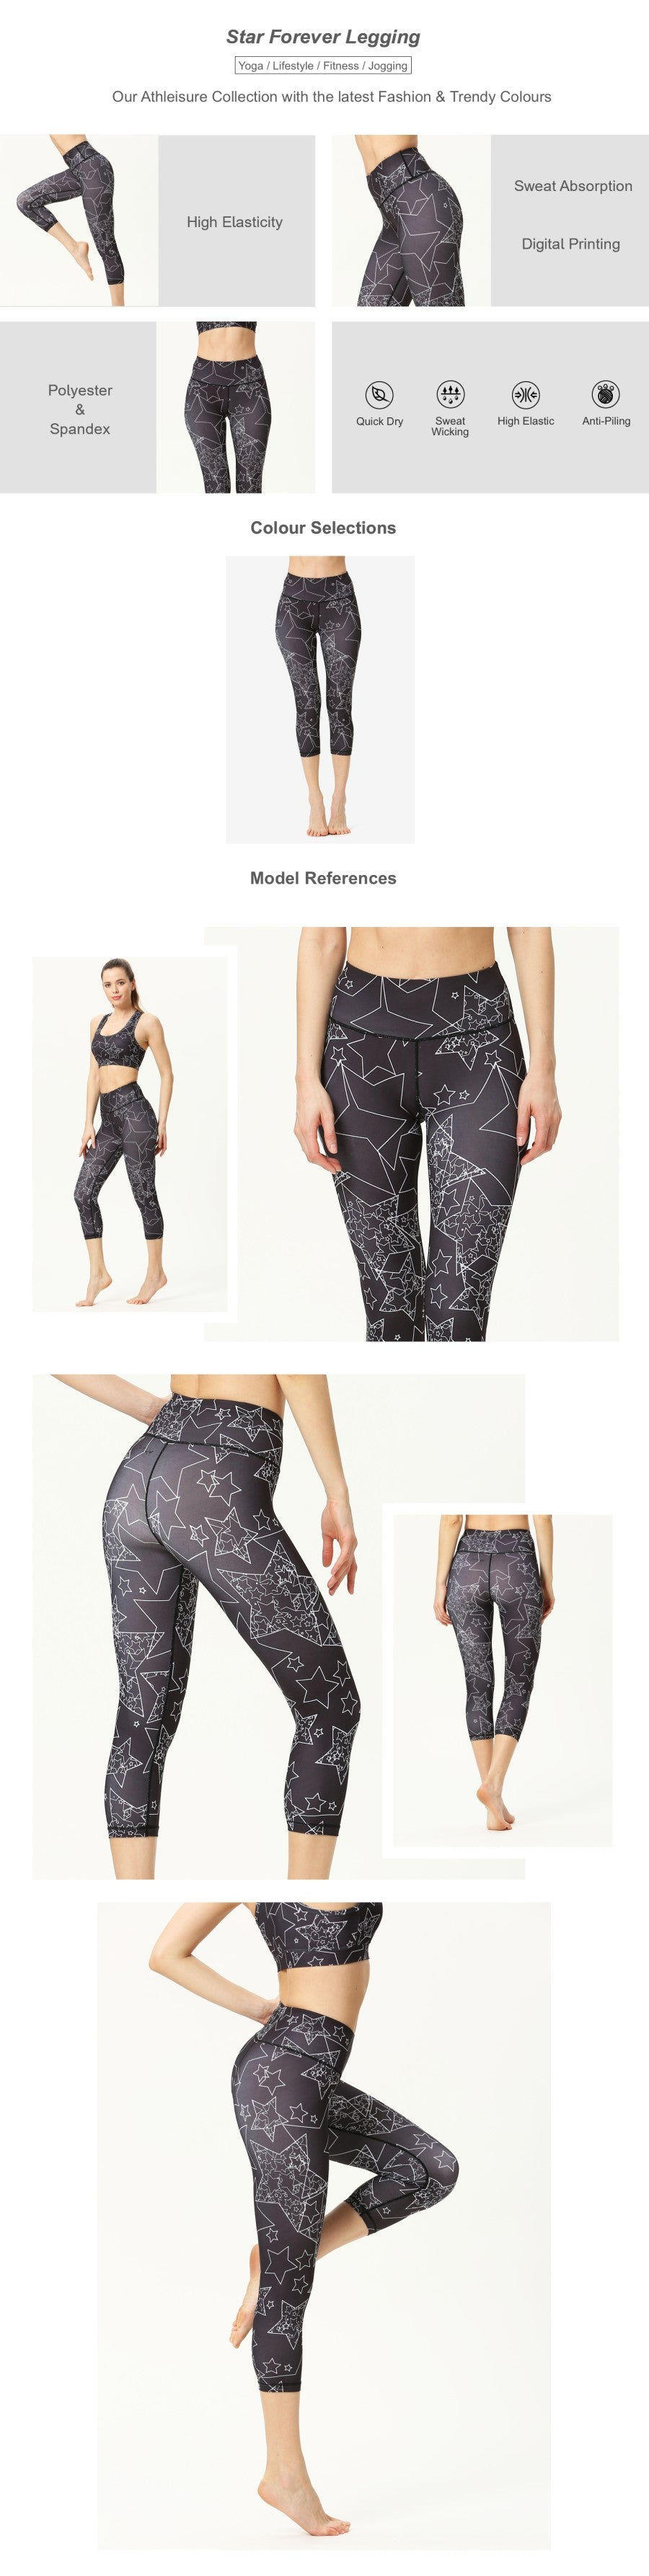 Star Forever Legging